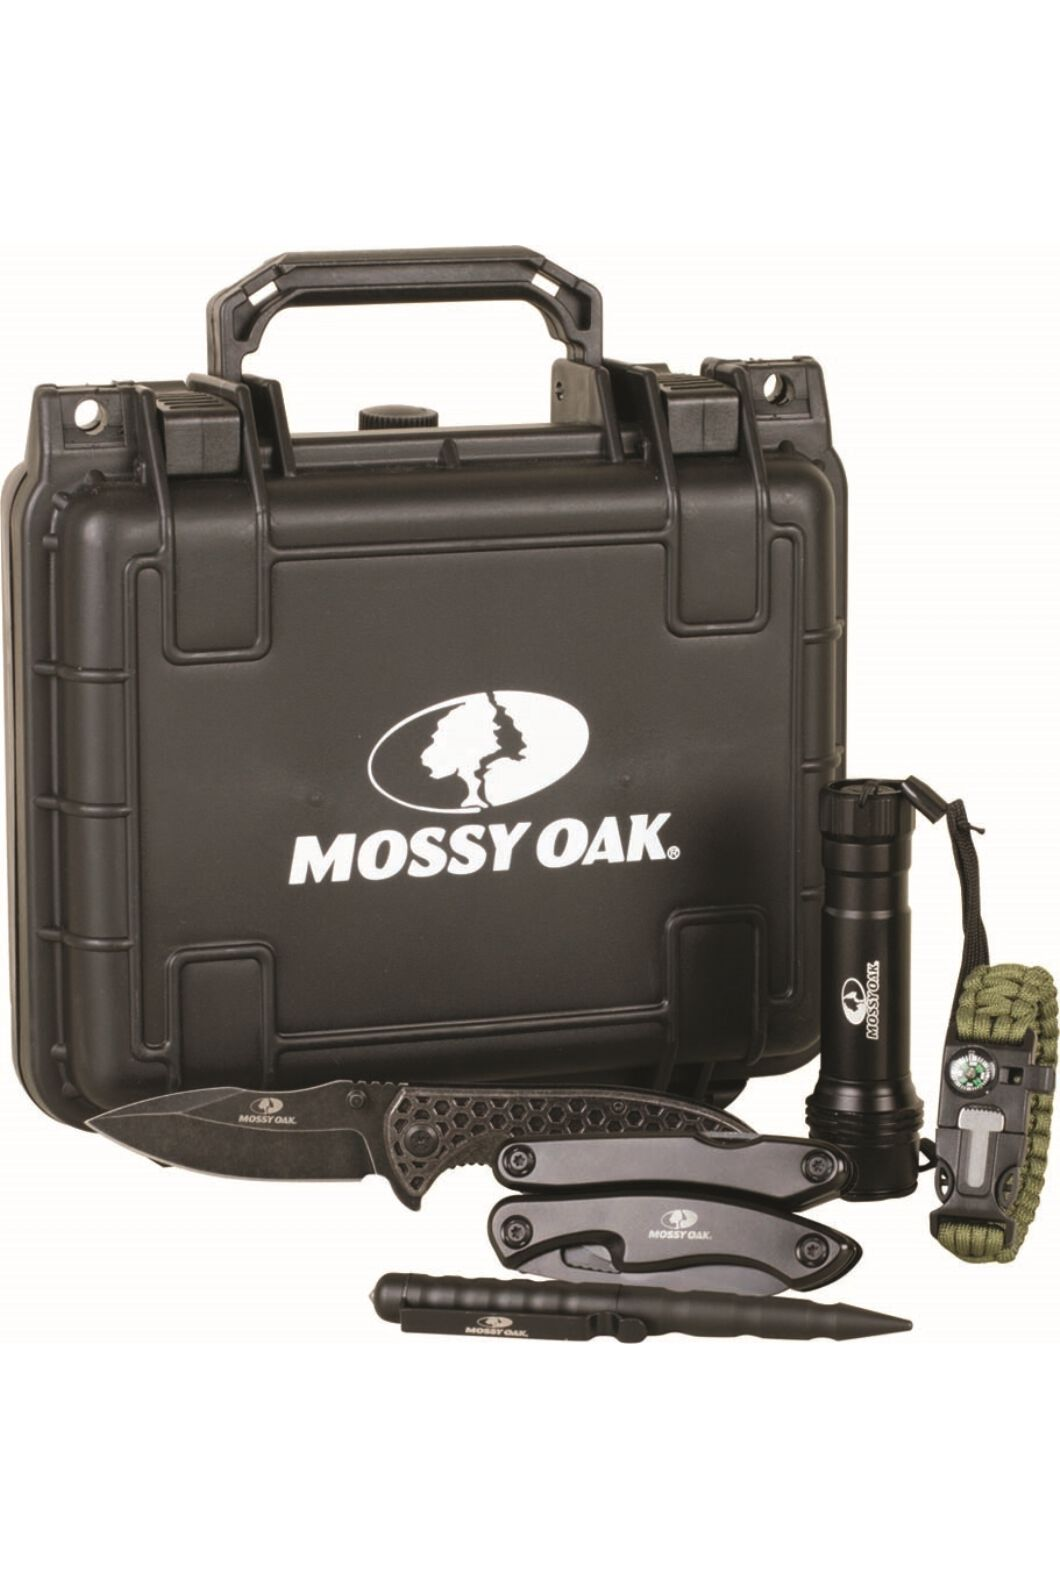 Mossy Oak 7 Piece Survival Tool Kit, None, hi-res